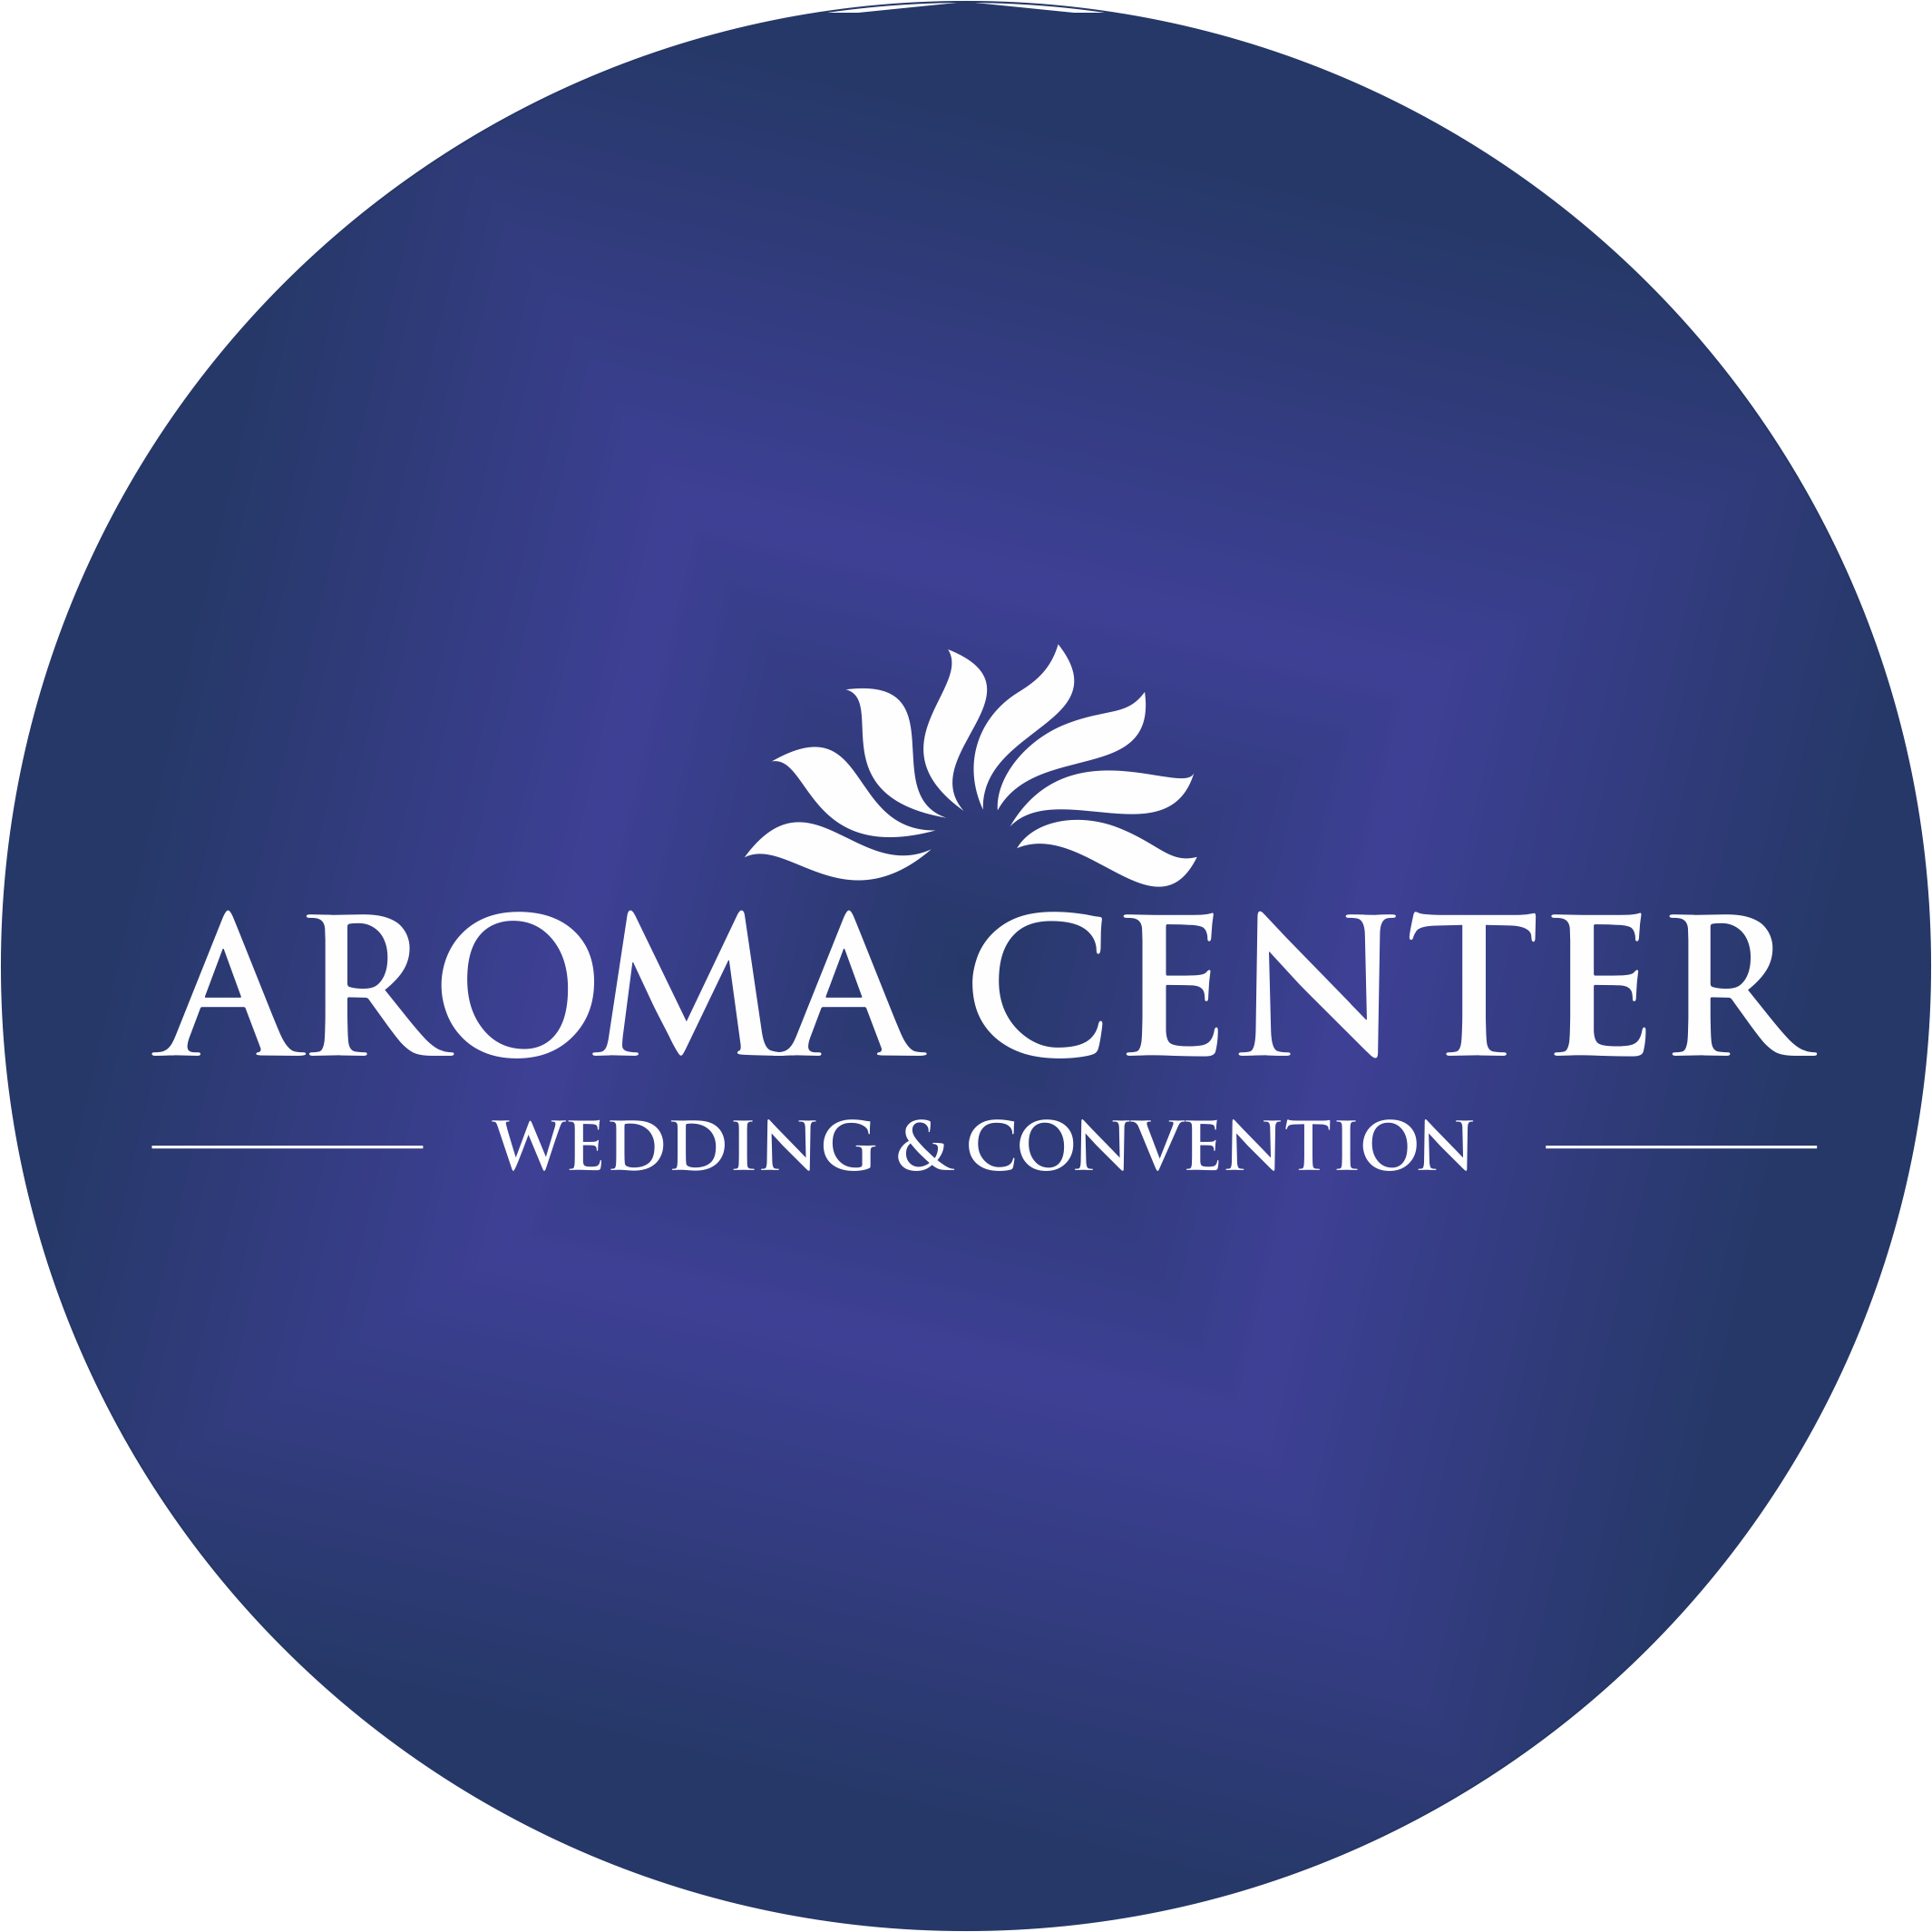 AROMA CENTER WEDDING & CONVENTION